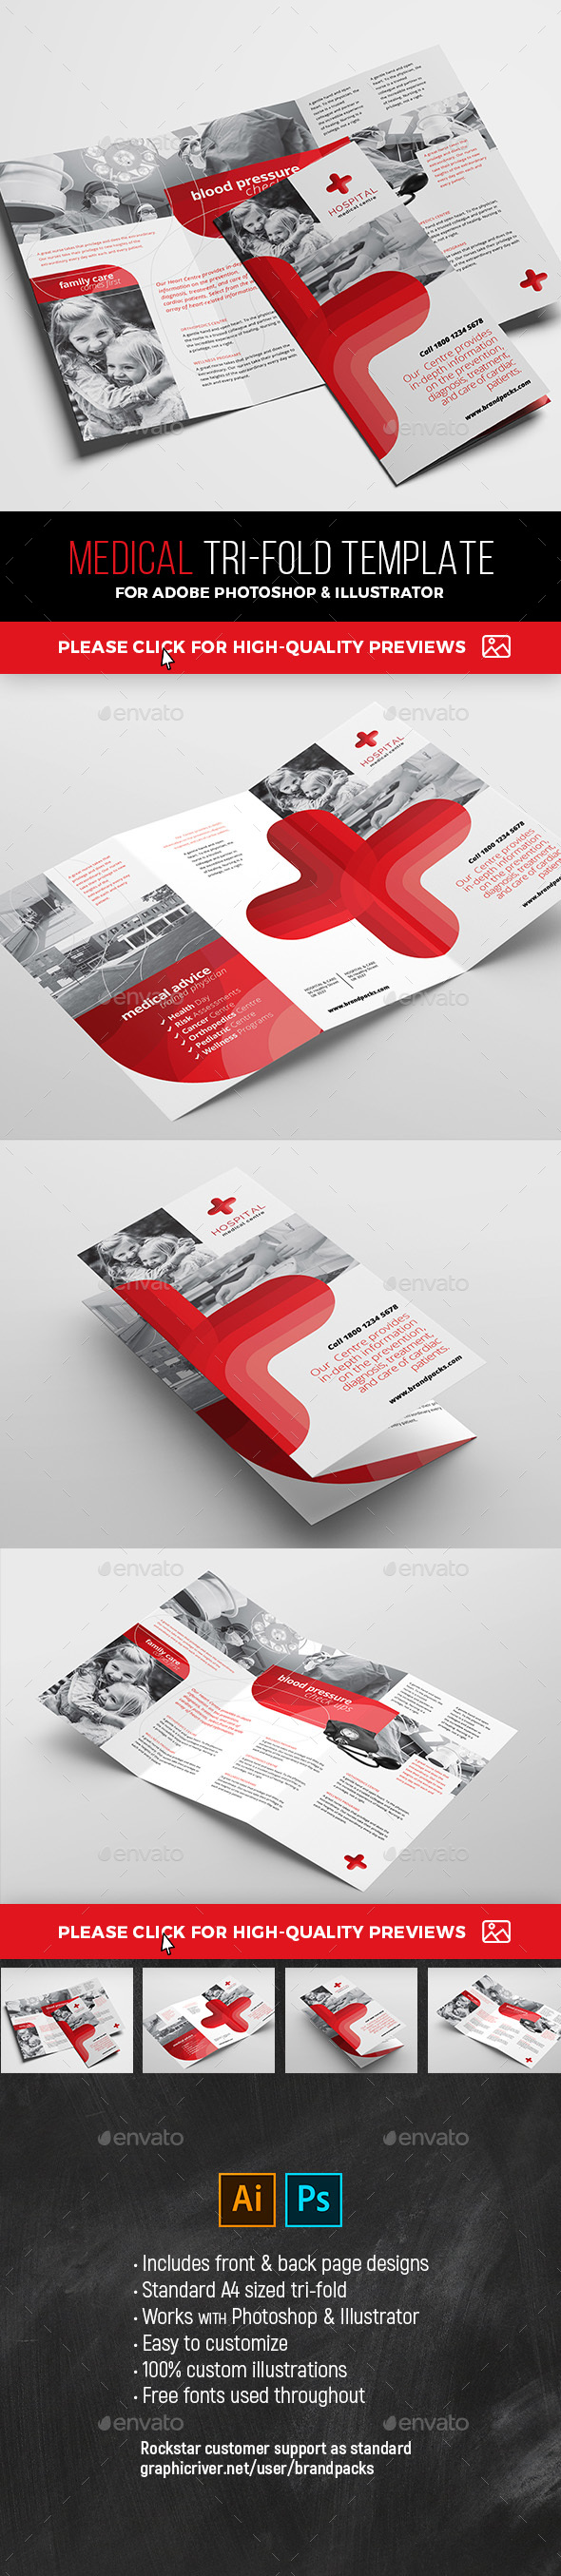 Medical Tri-Fold Brochure Template - Corporate Flyers